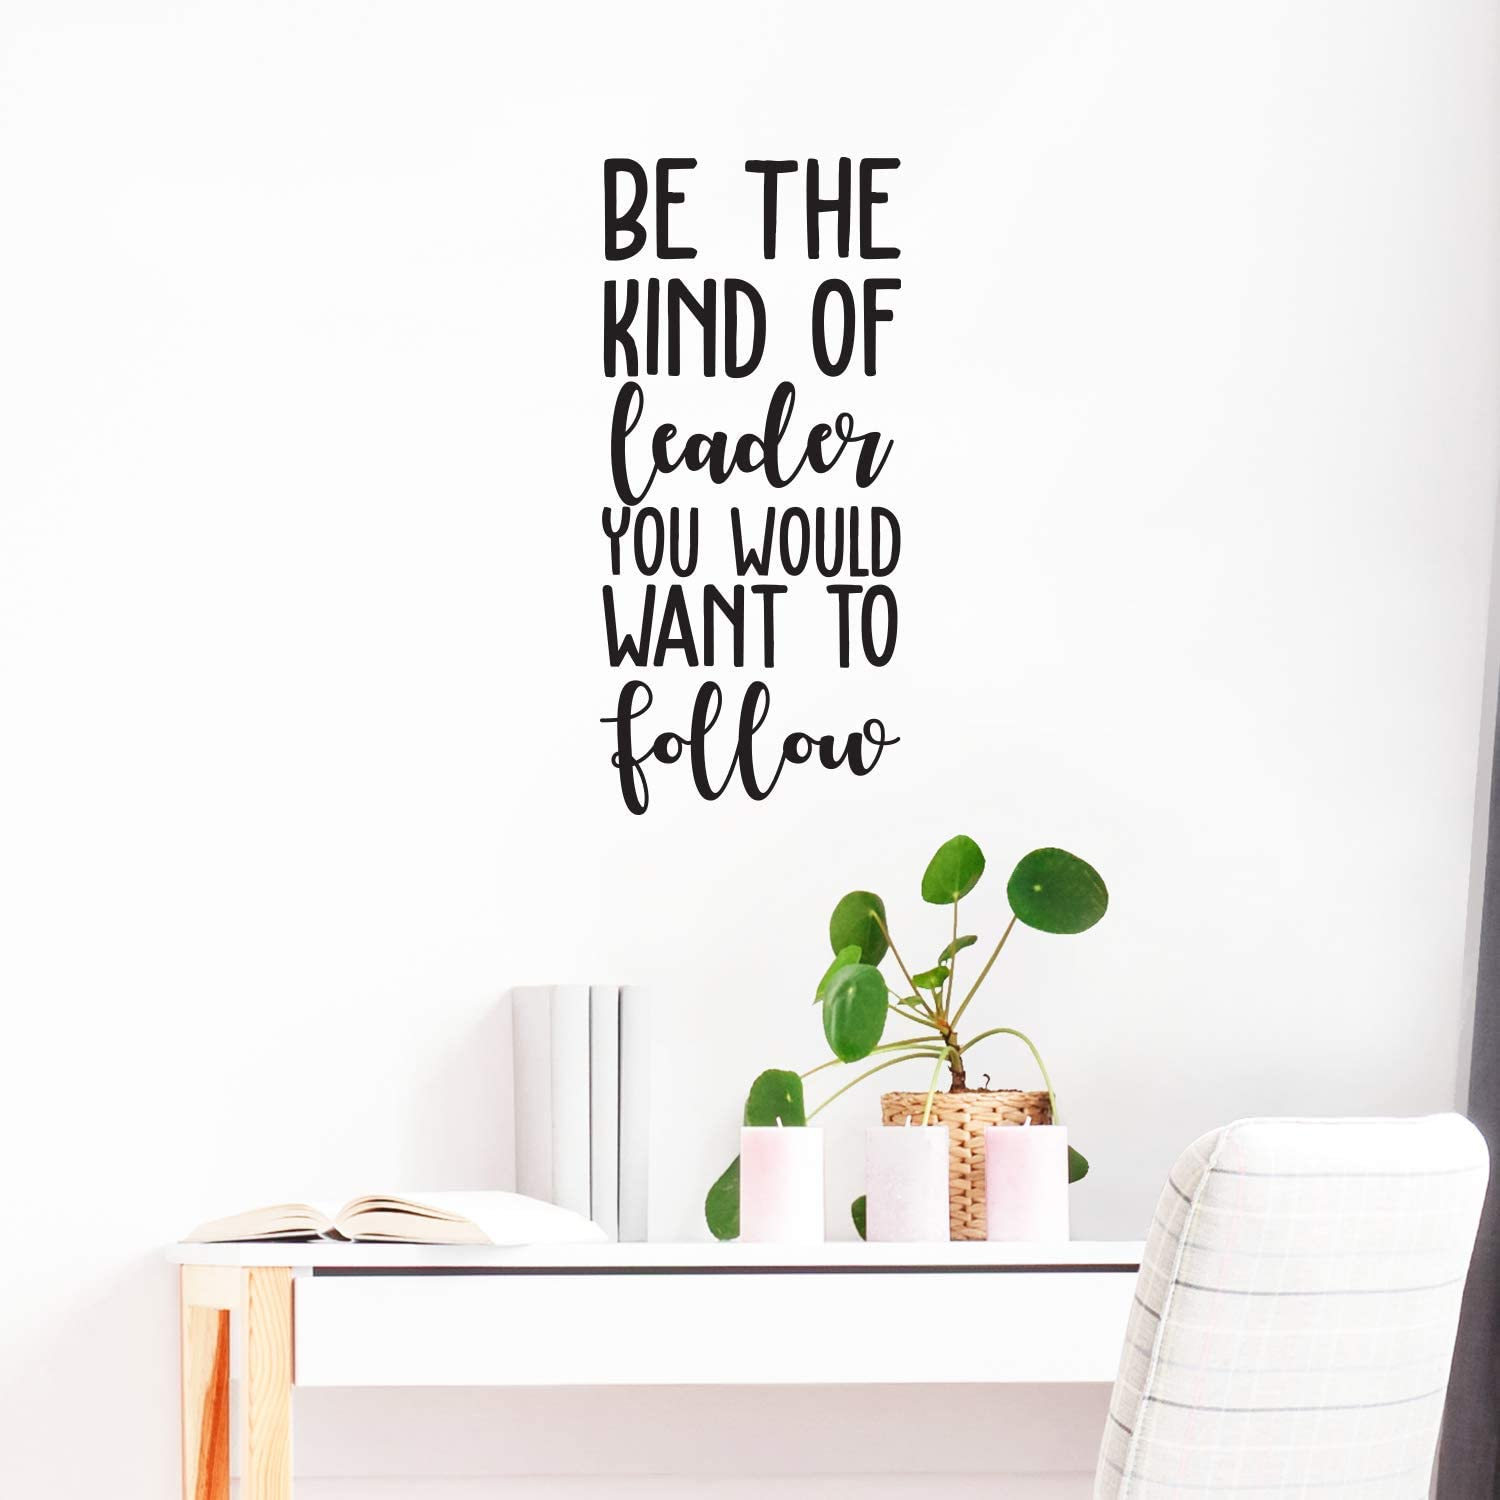 Vinyl Wall Art Decal - Be The Kind of Leader You Would Want to Follow - 25